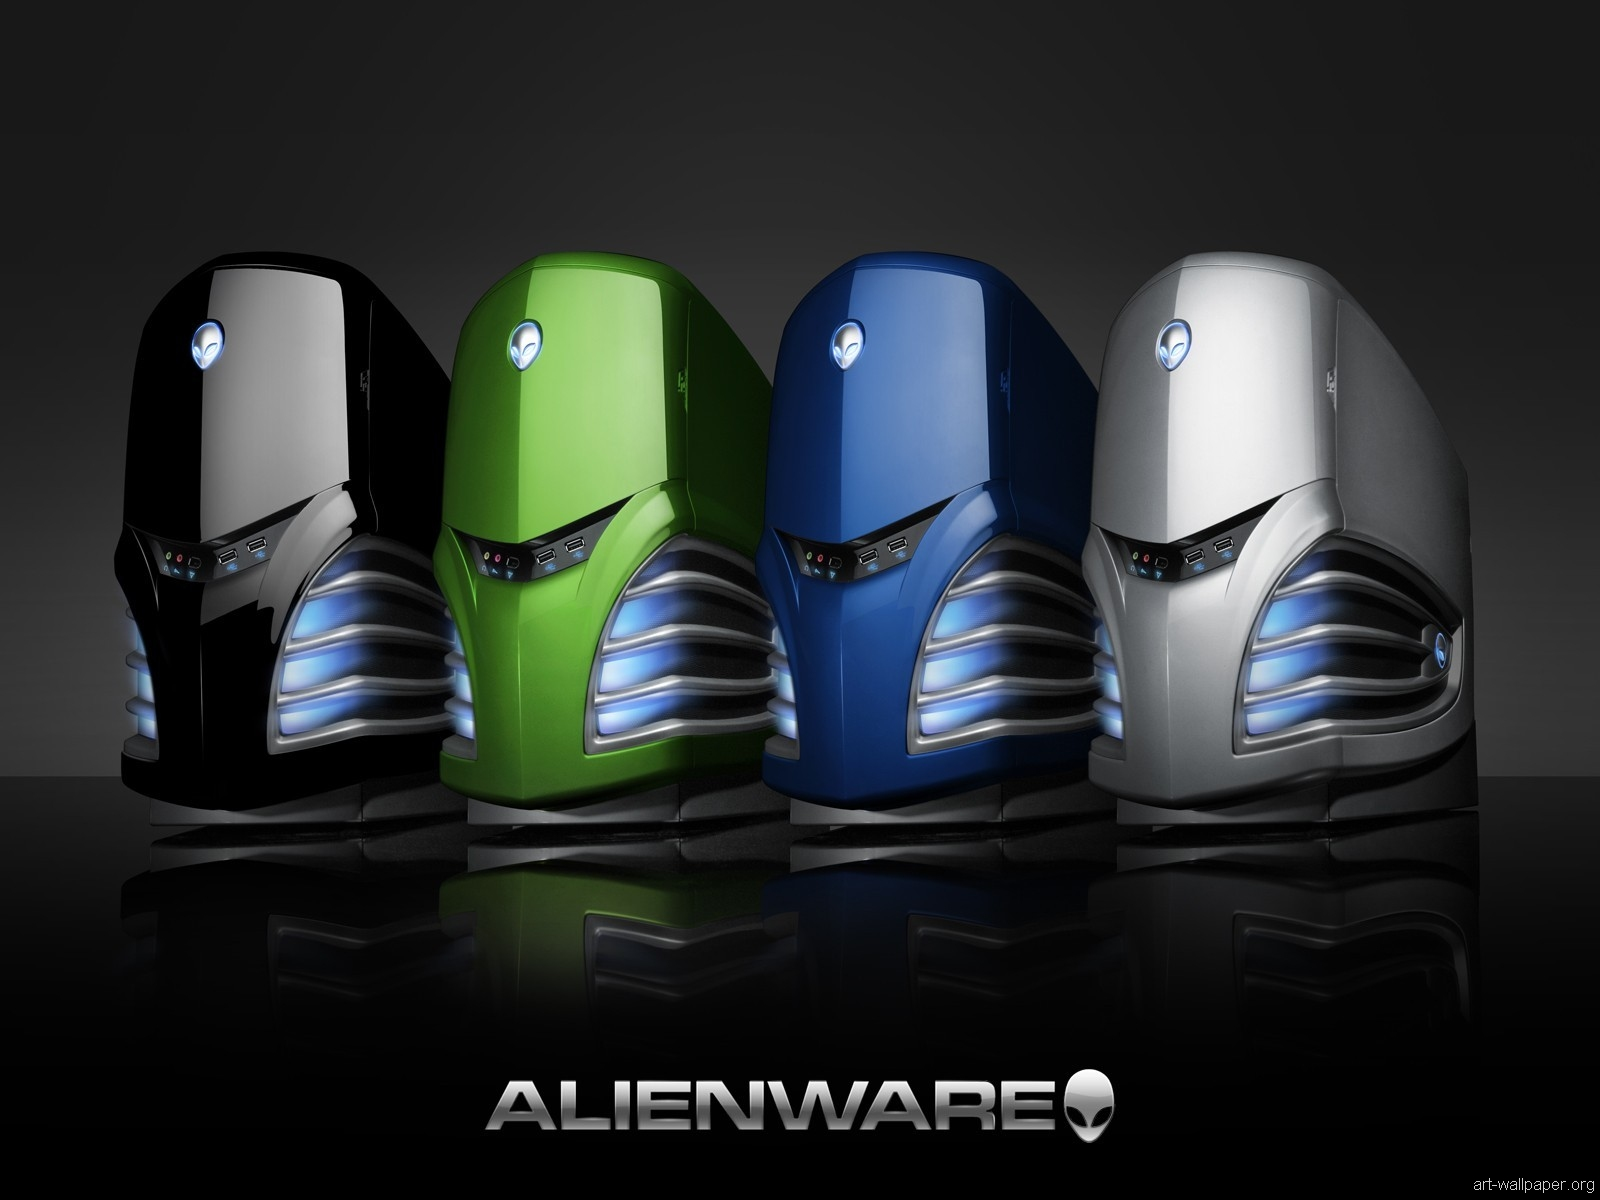 10 Best Alienware Desktop HD Wallpapers Collection   Geekyard 1600x1200